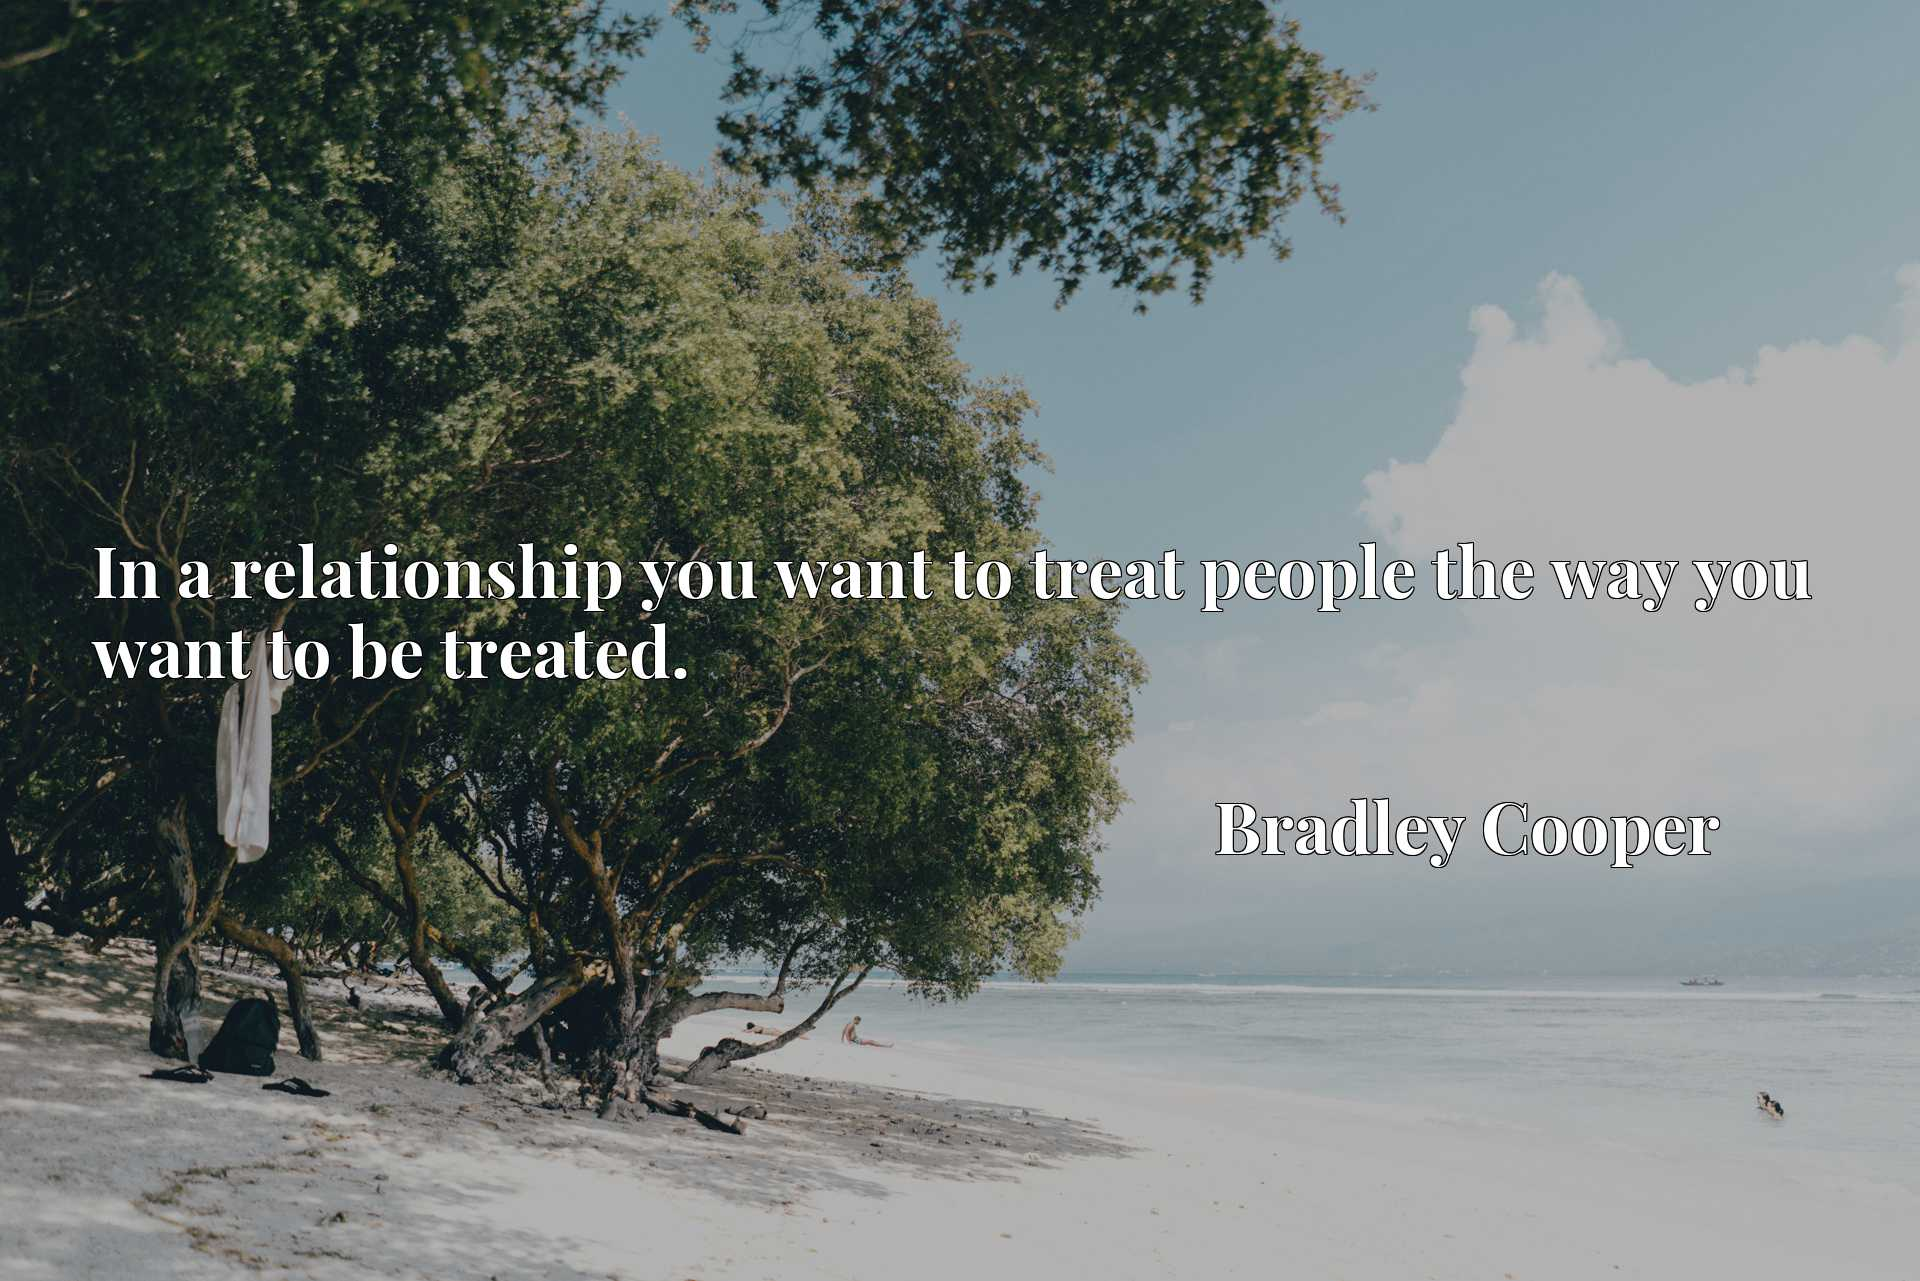 In a relationship you want to treat people the way you want to be treated.